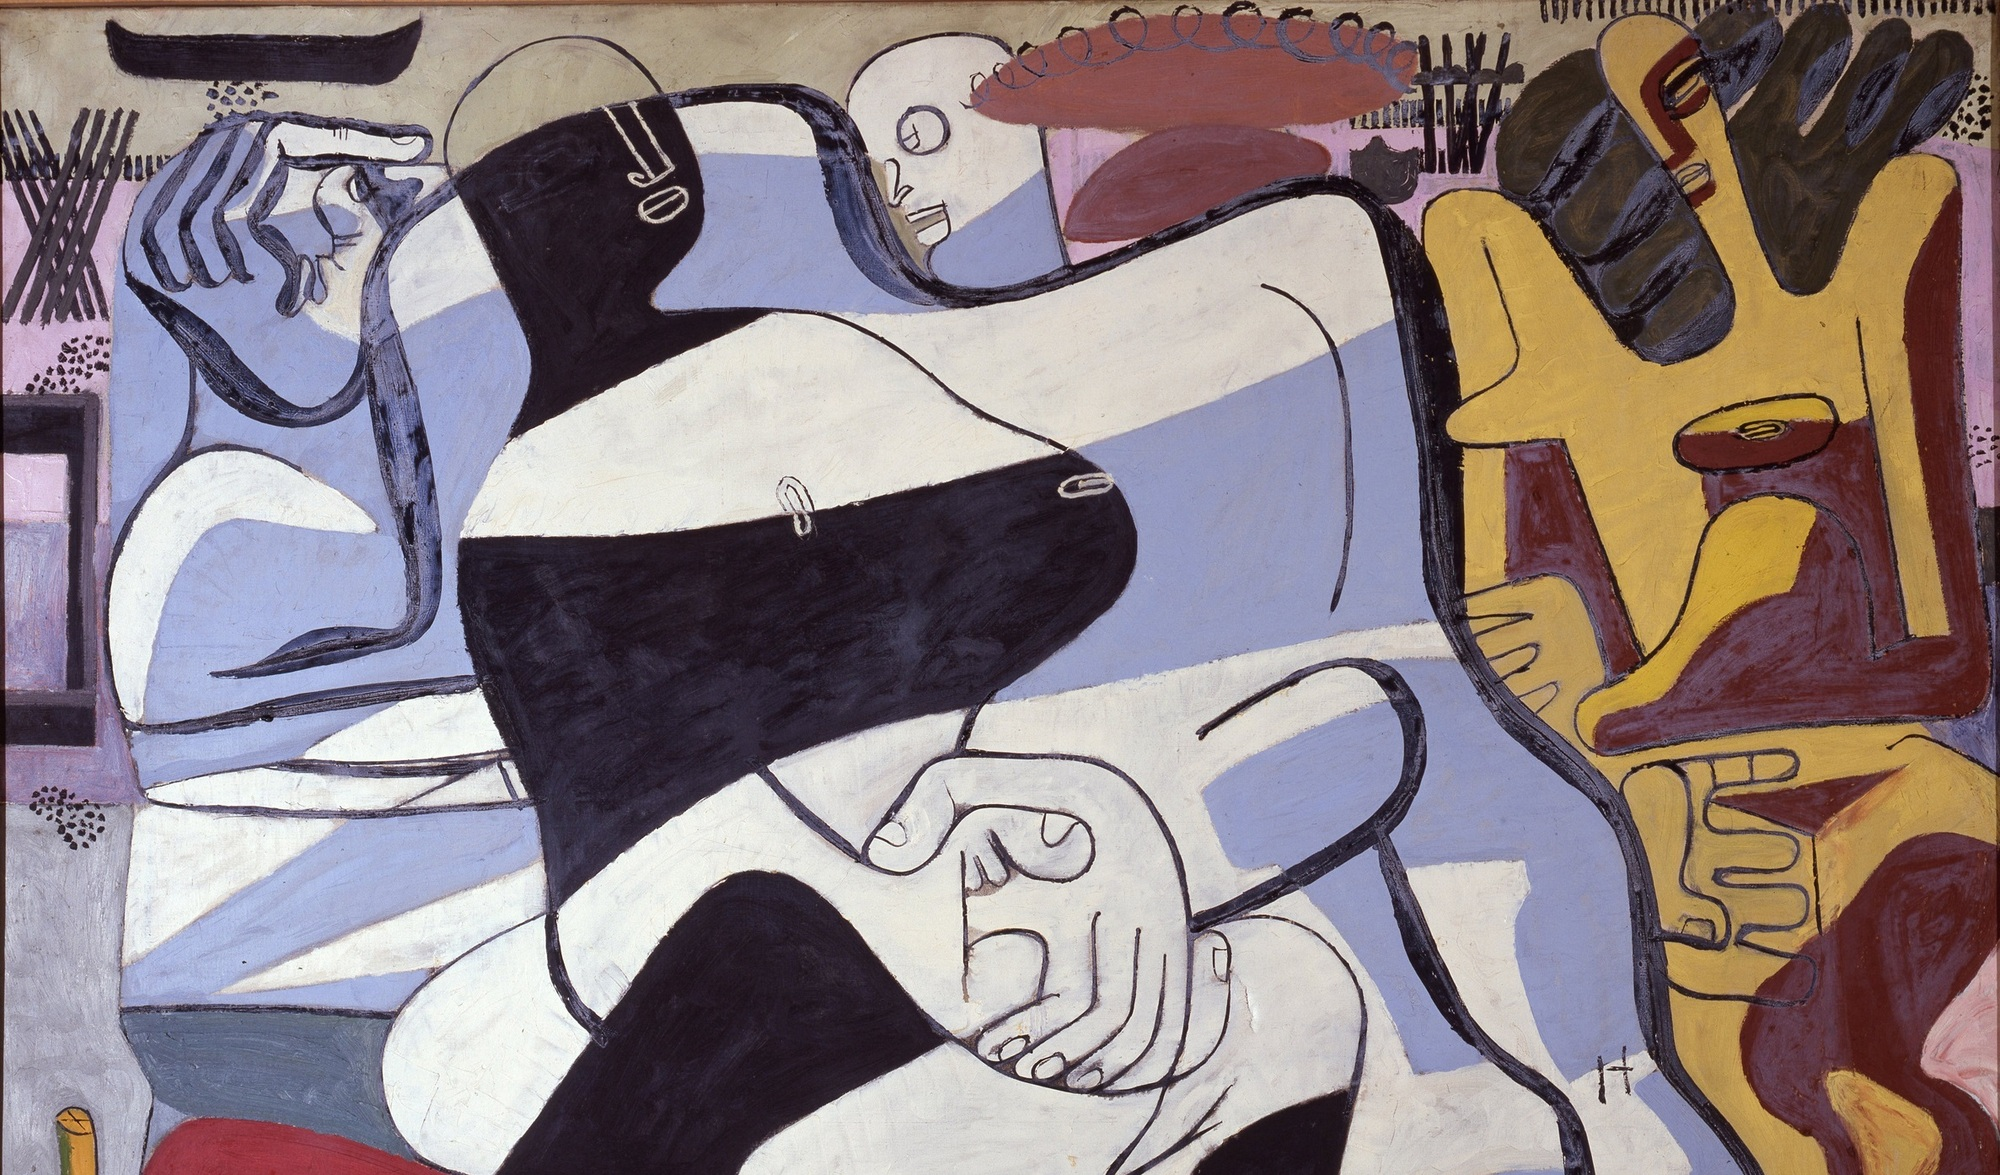 Le Corbusier's Paintings Showcased for the First Time Since 1966